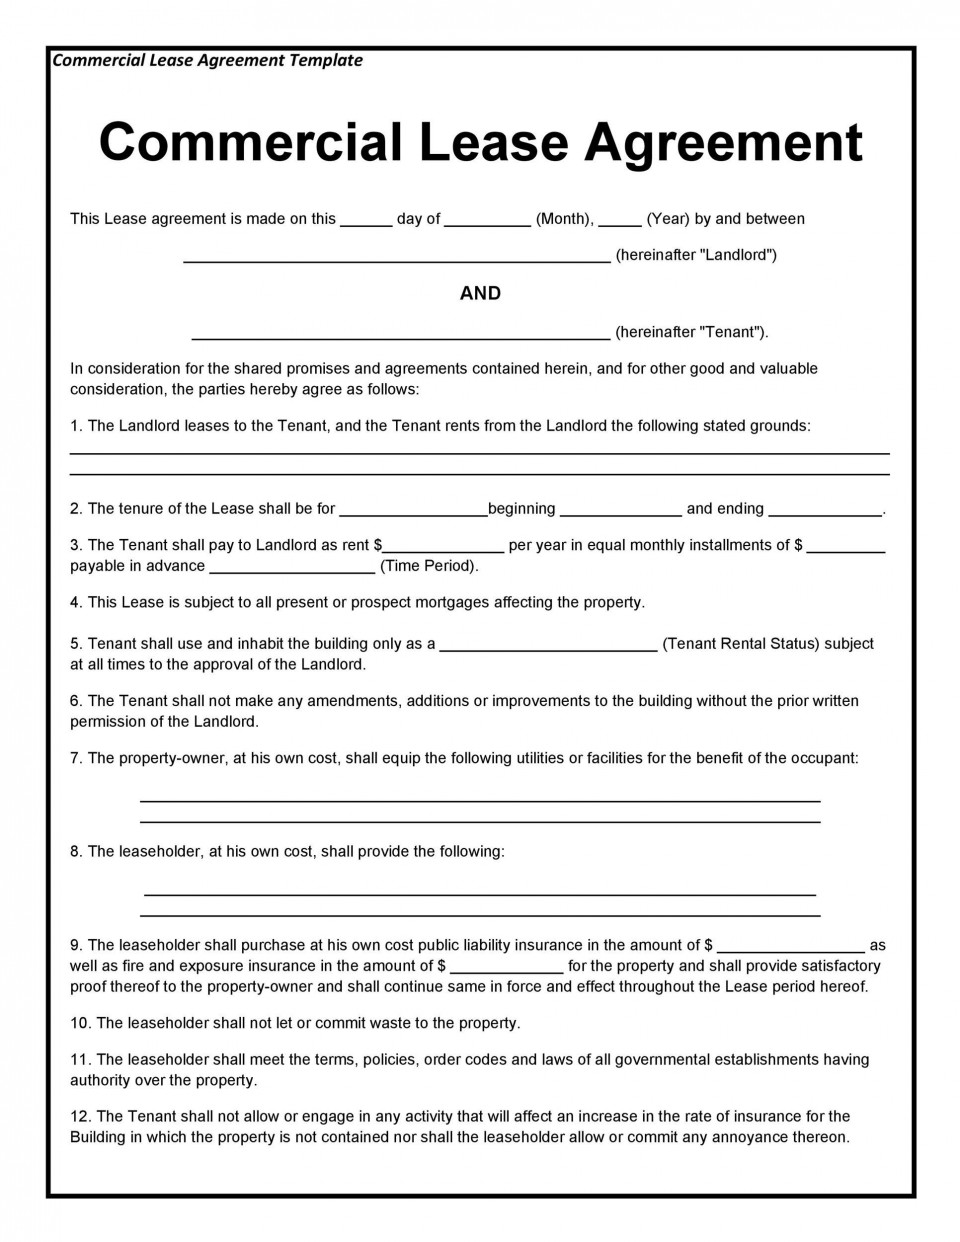 003 Remarkable Template For Home Rental Agreement Photo  House Rent960